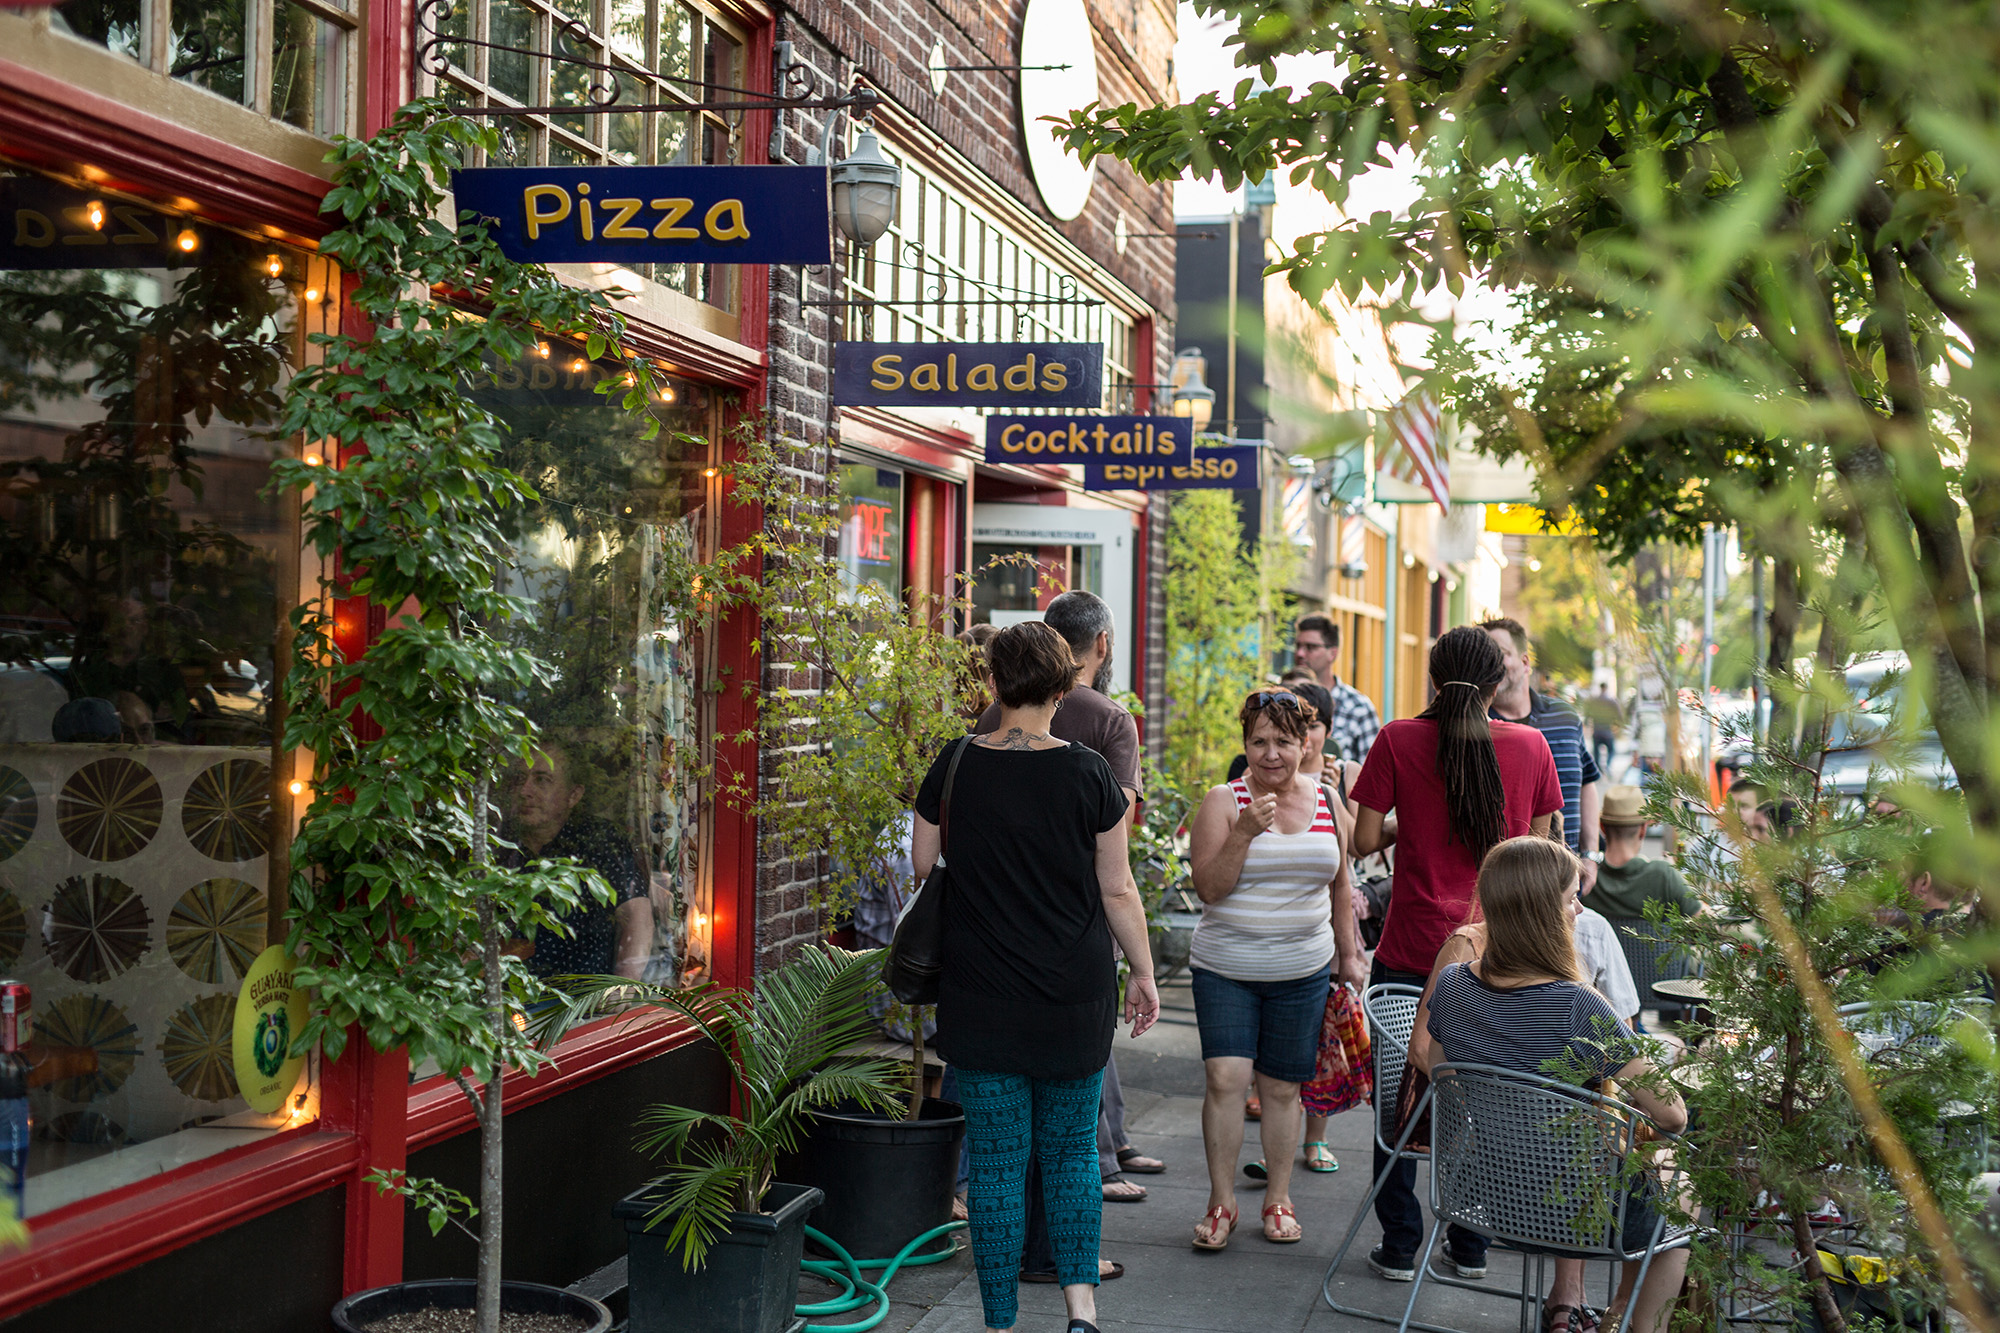 Best Colleges For Doctors >> The 6 Best Portland Neighborhoods to Explore on Vacation – Locals' Picks   Travel   US News